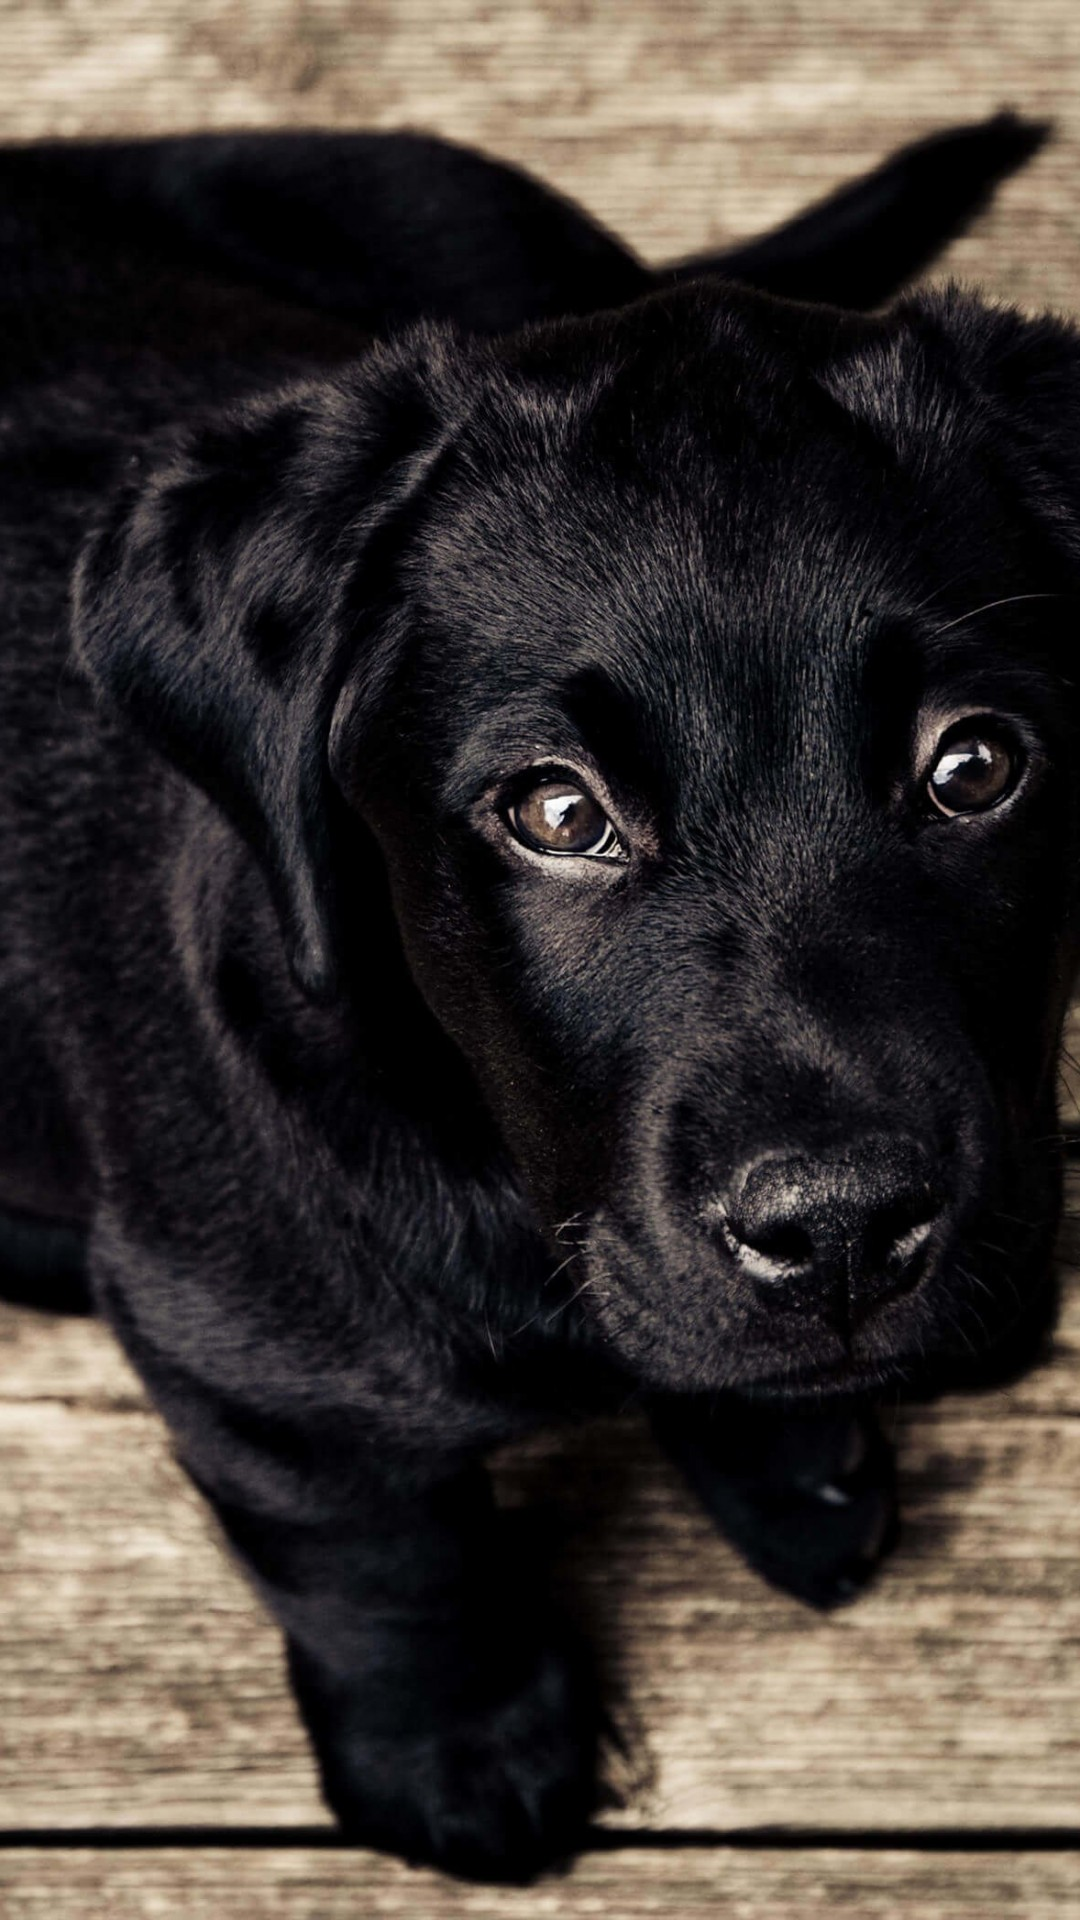 Black Lab Puppy Wallpaper for LG G2